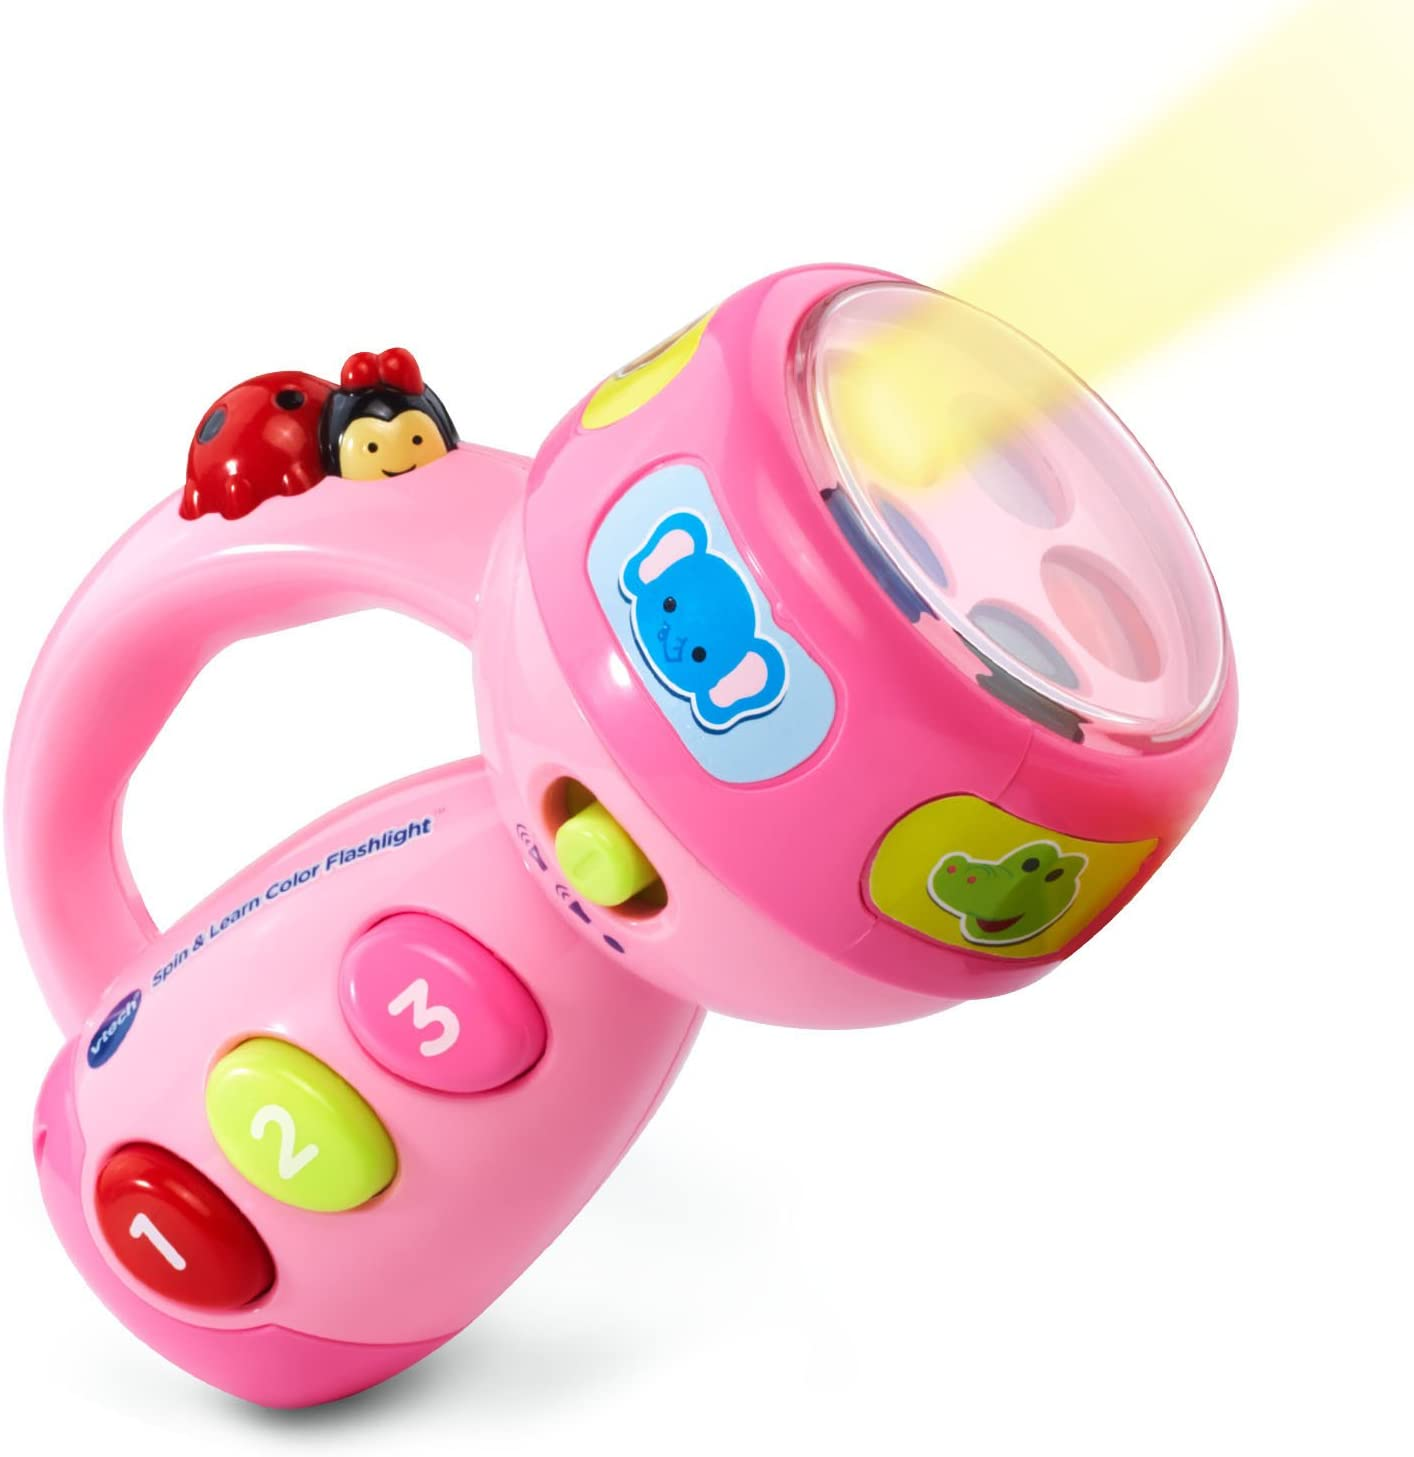 Spin and Learn Color Flashlight